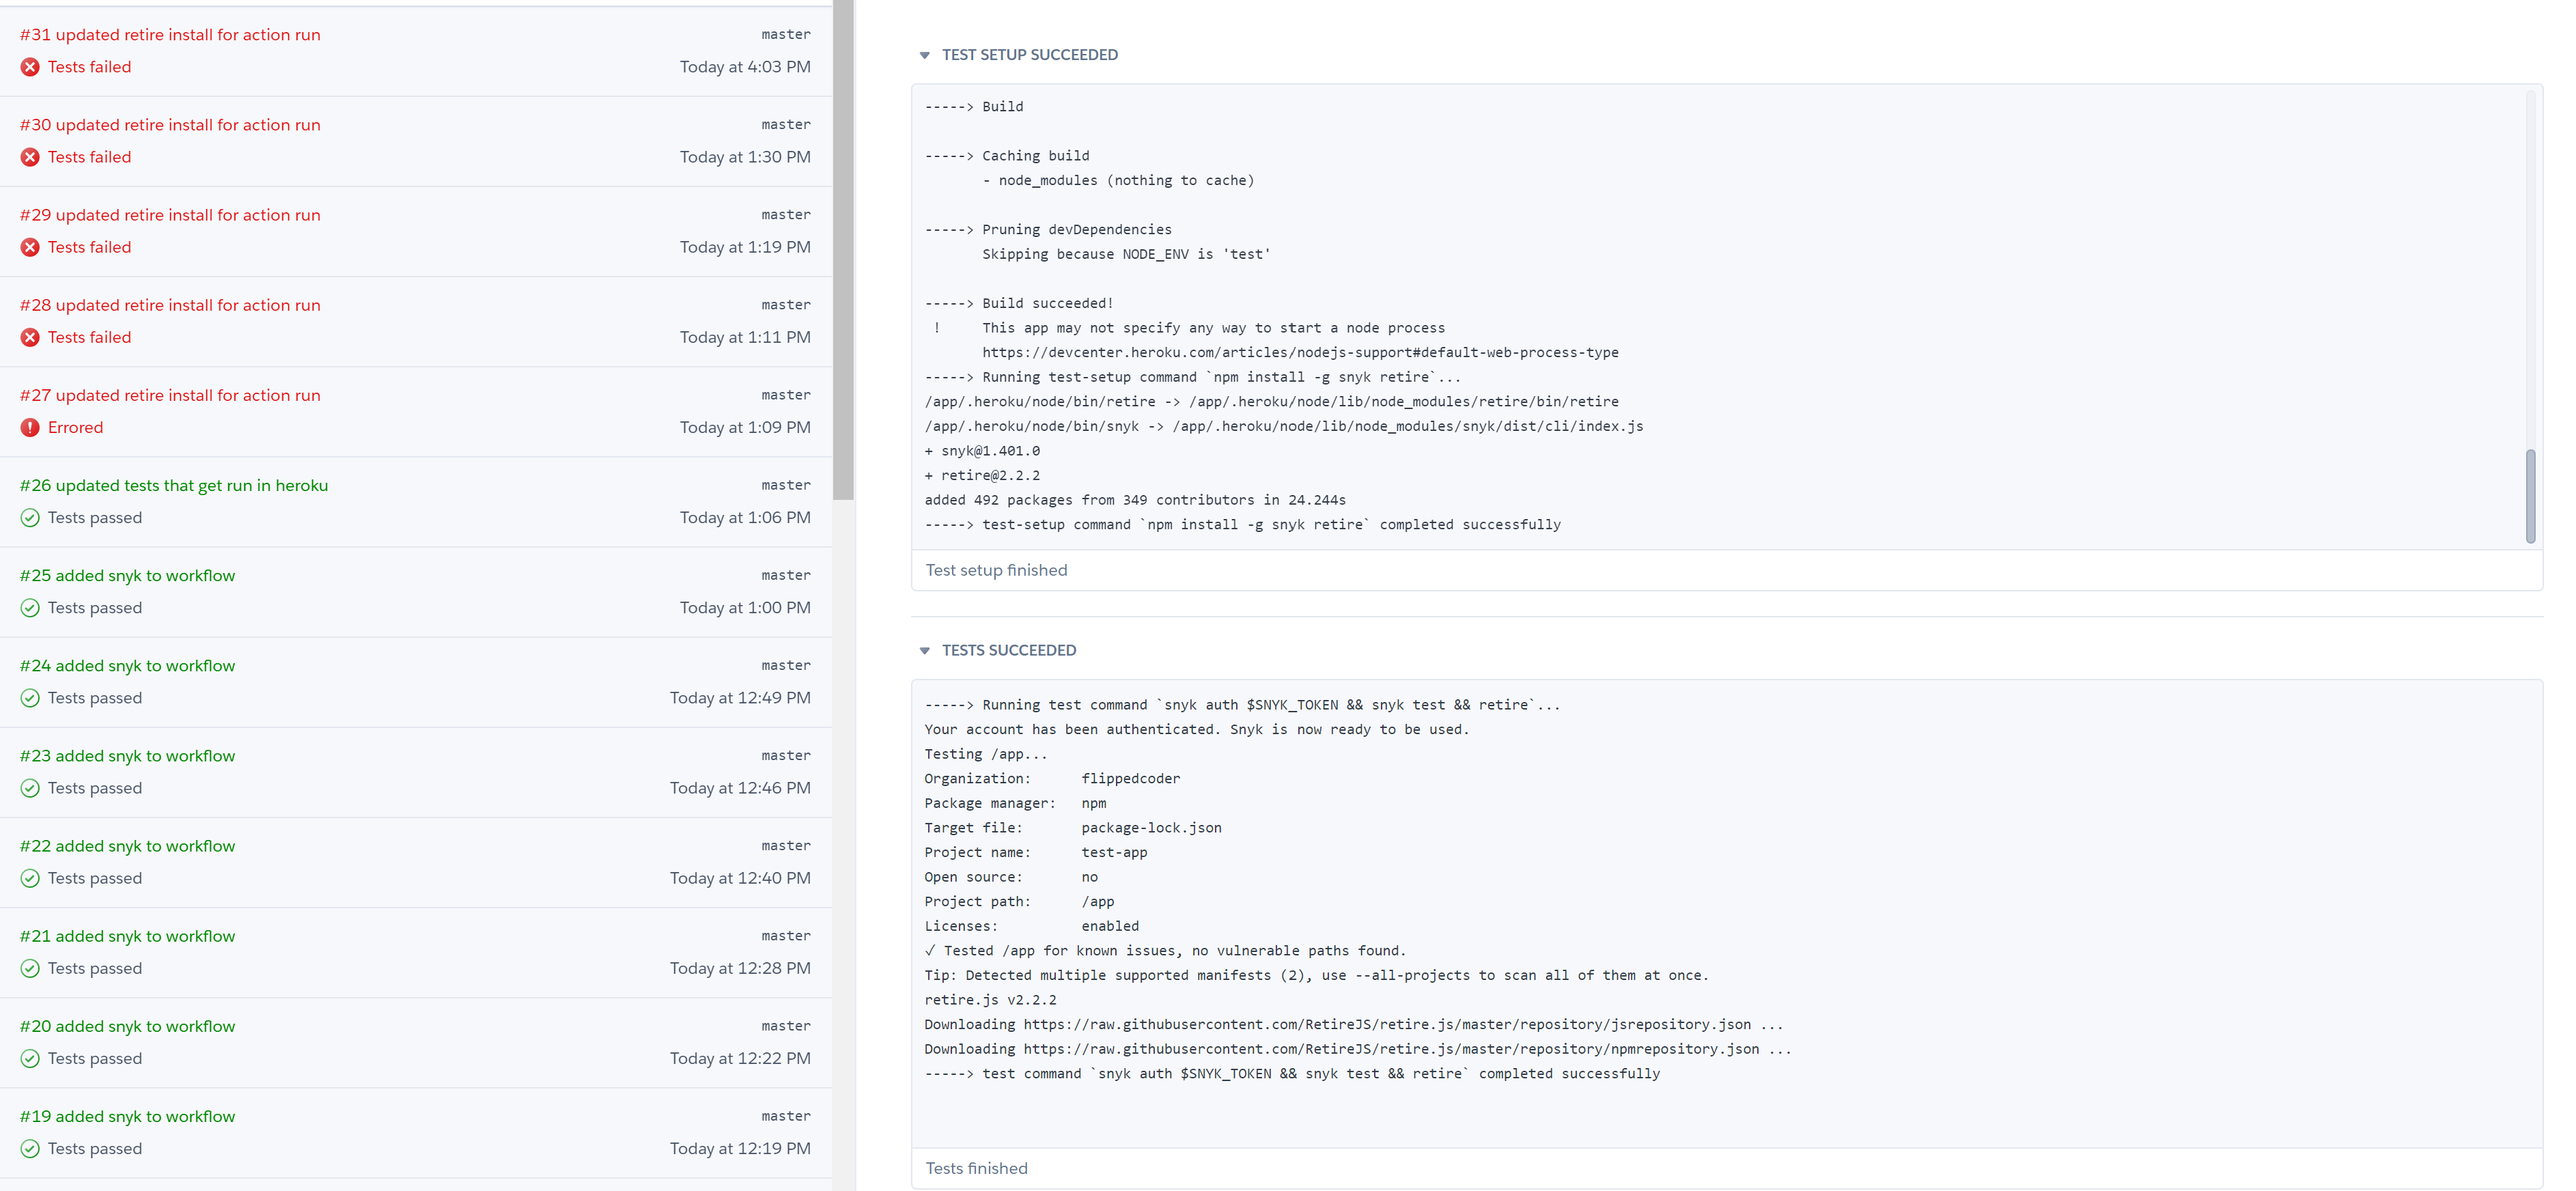 Tests running in Heroku CI